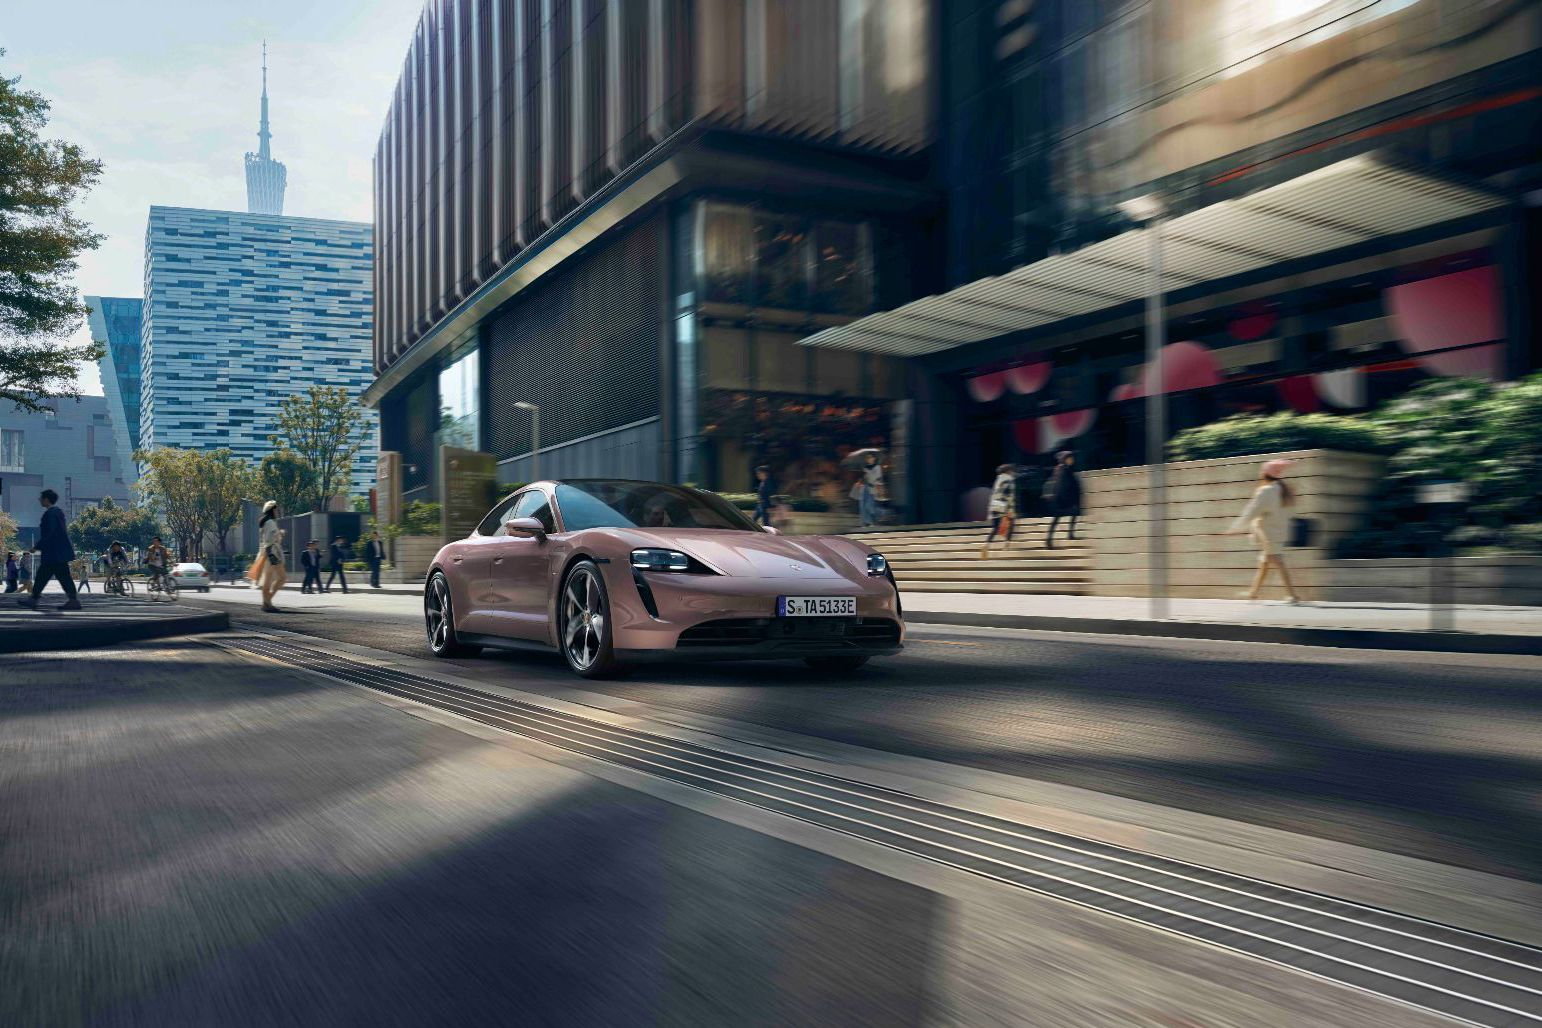 The Porsche Taycan Family Welcomes its All-Electric Rear-Wheel Drive Member